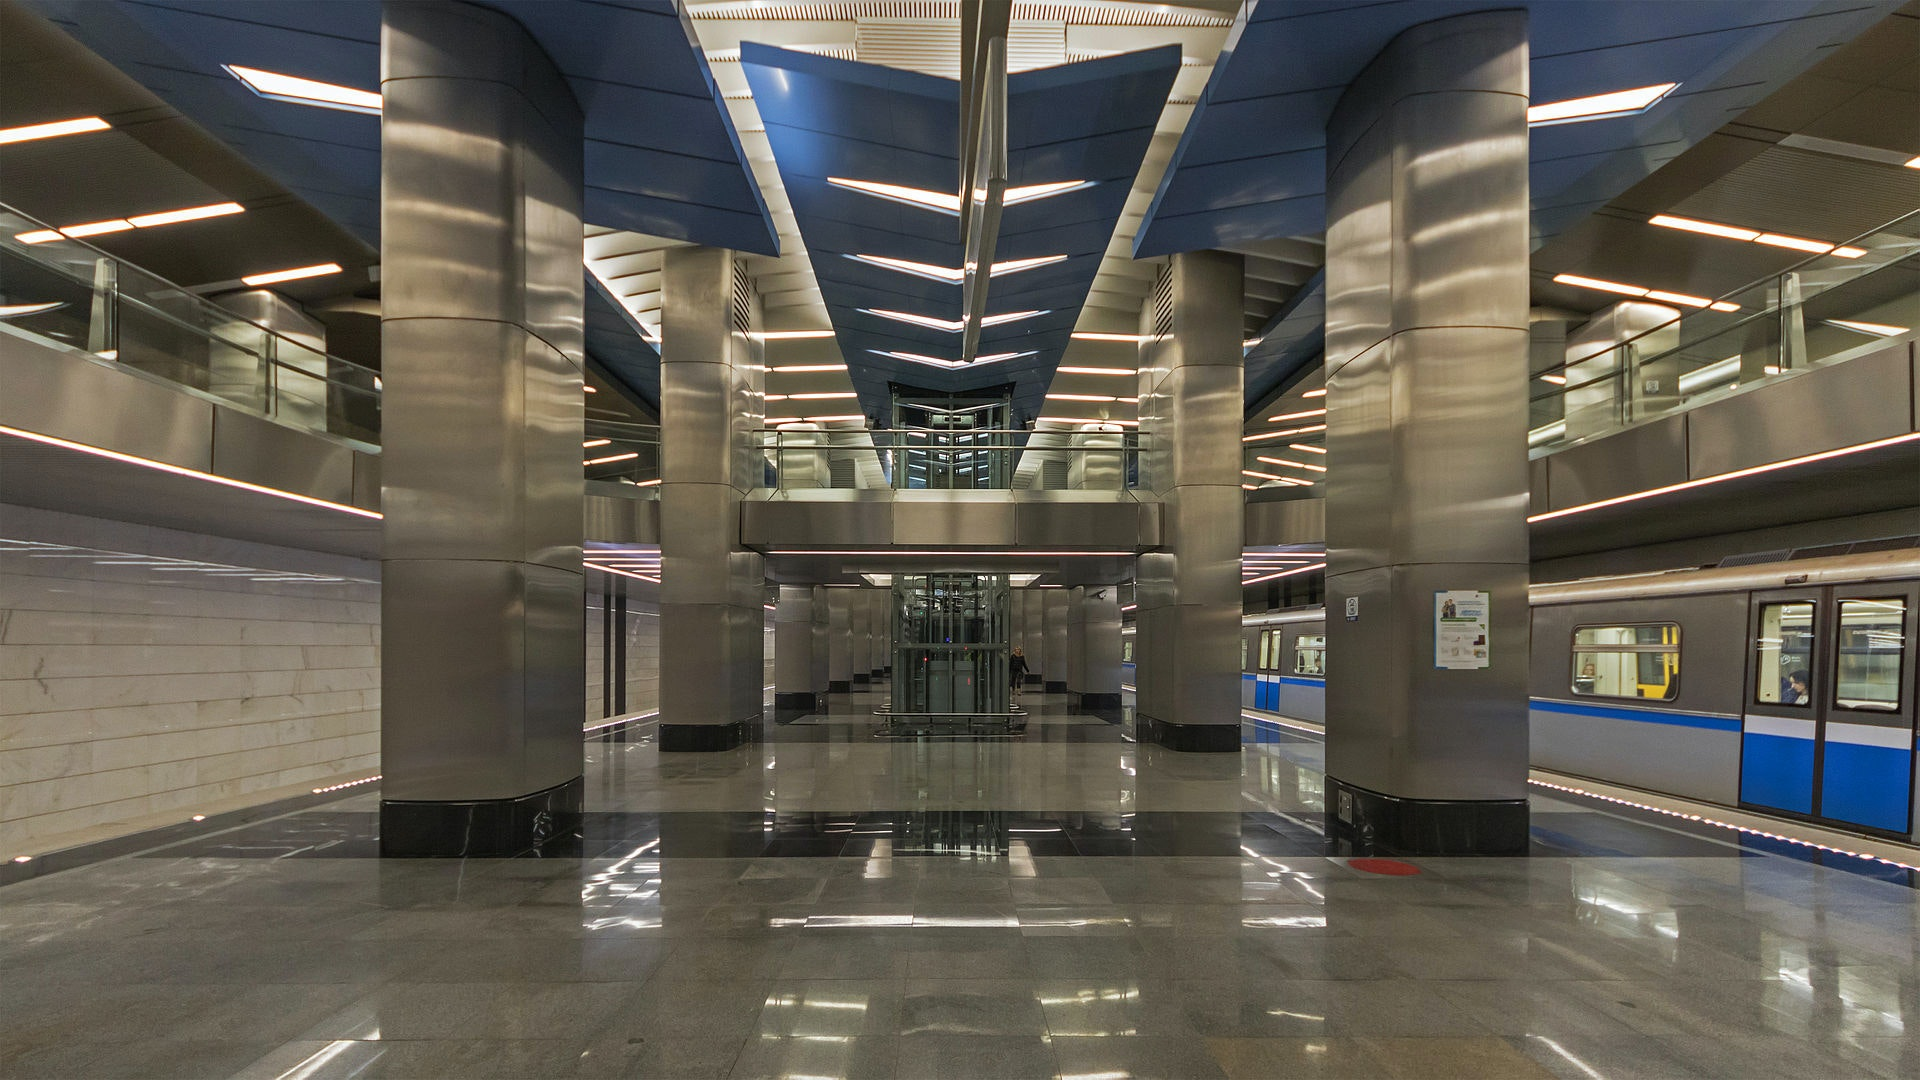 New stations of the metropolitan Butovskaya metro line: passengers are worried and delighted 26